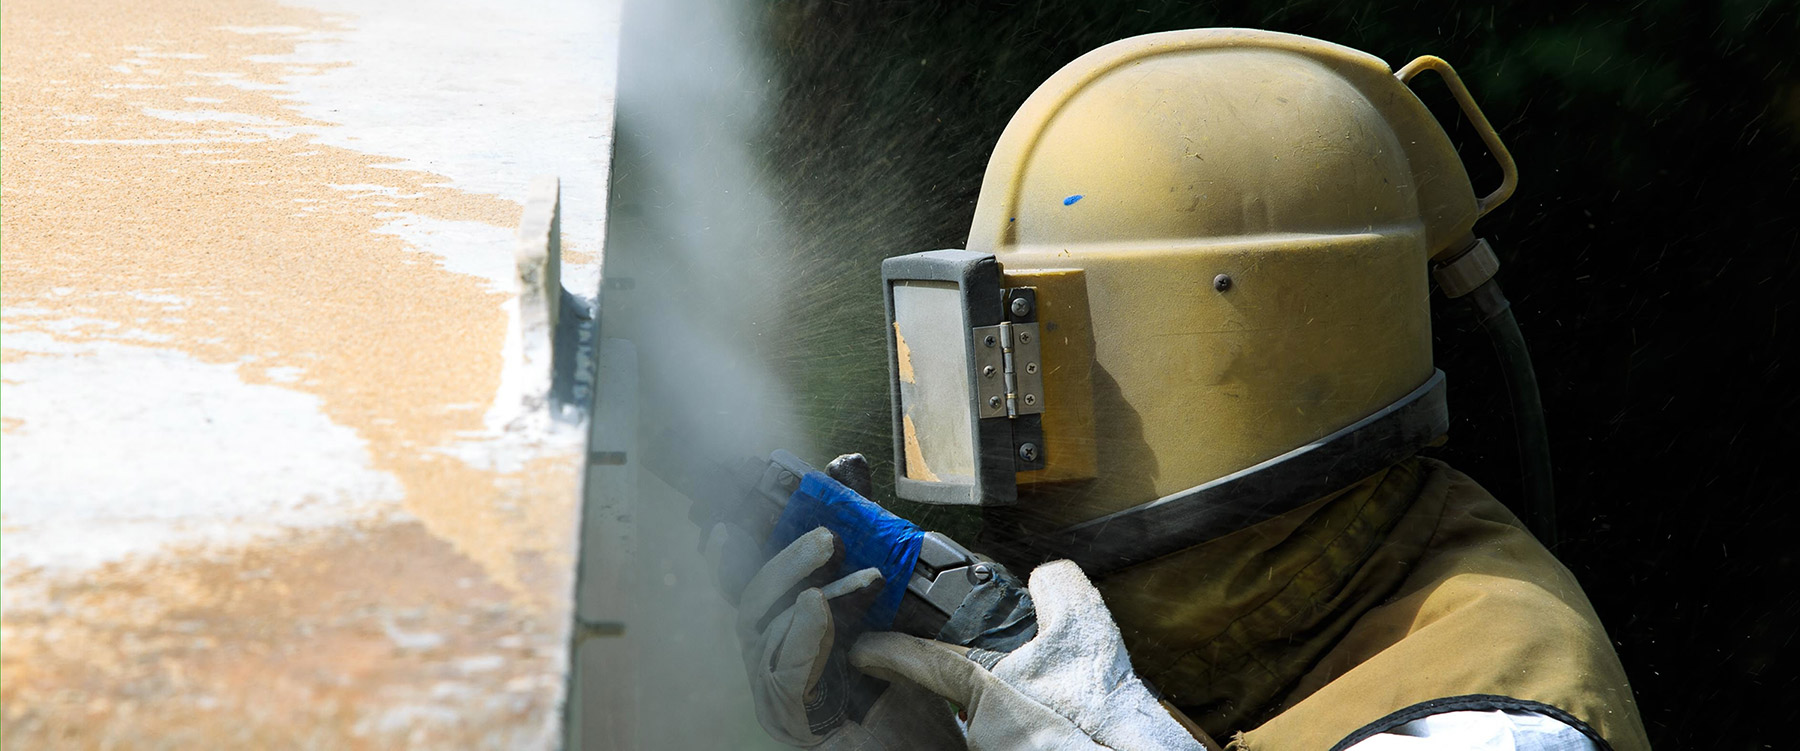 Sodablasting, sandblasting and multi media blasting